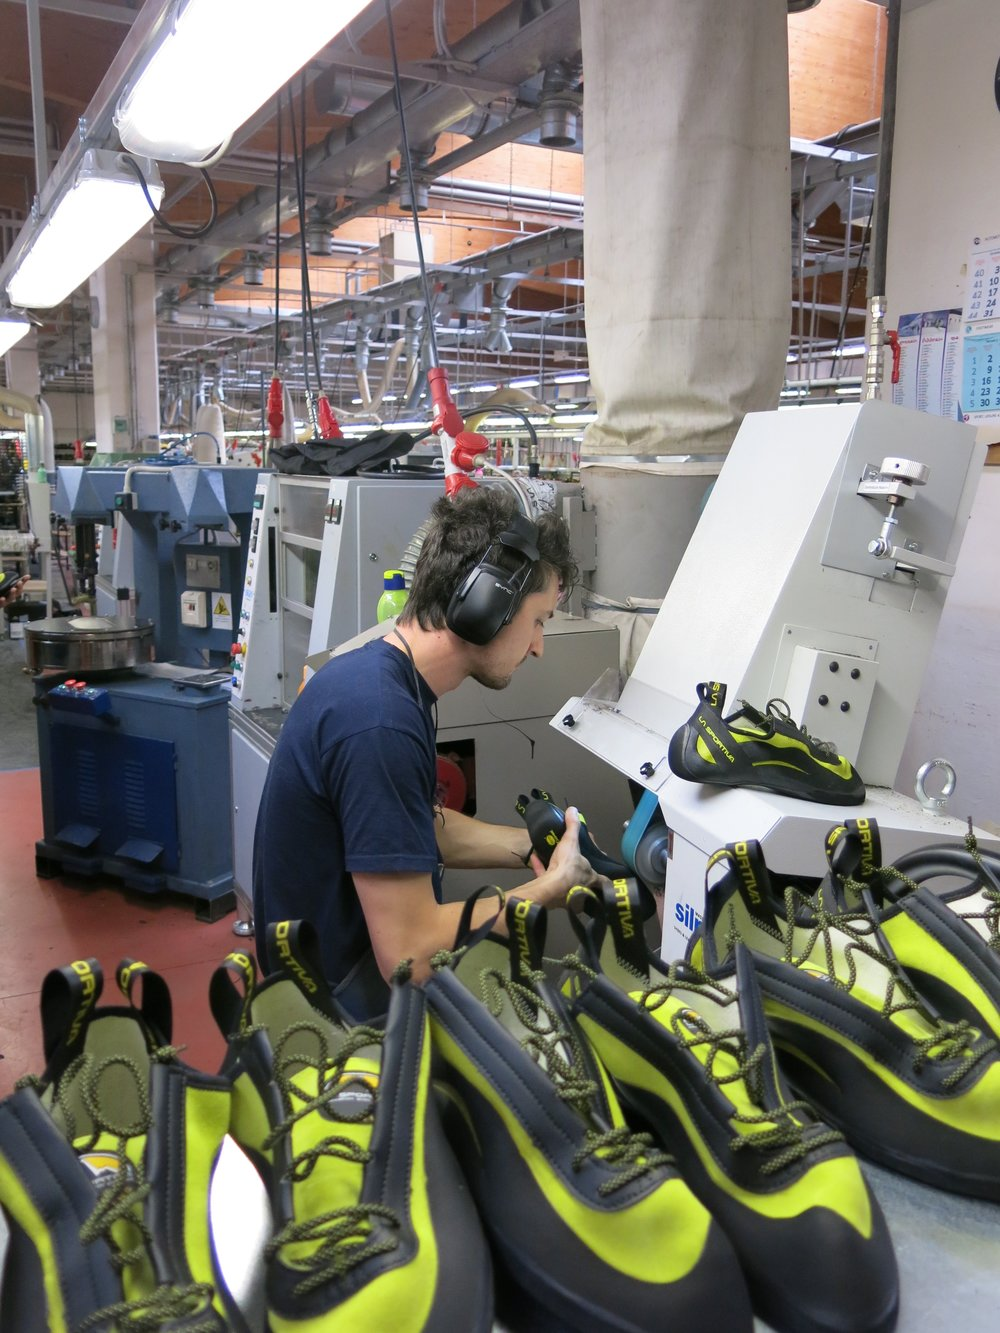 Quality control in action at the La Sportiva factory.